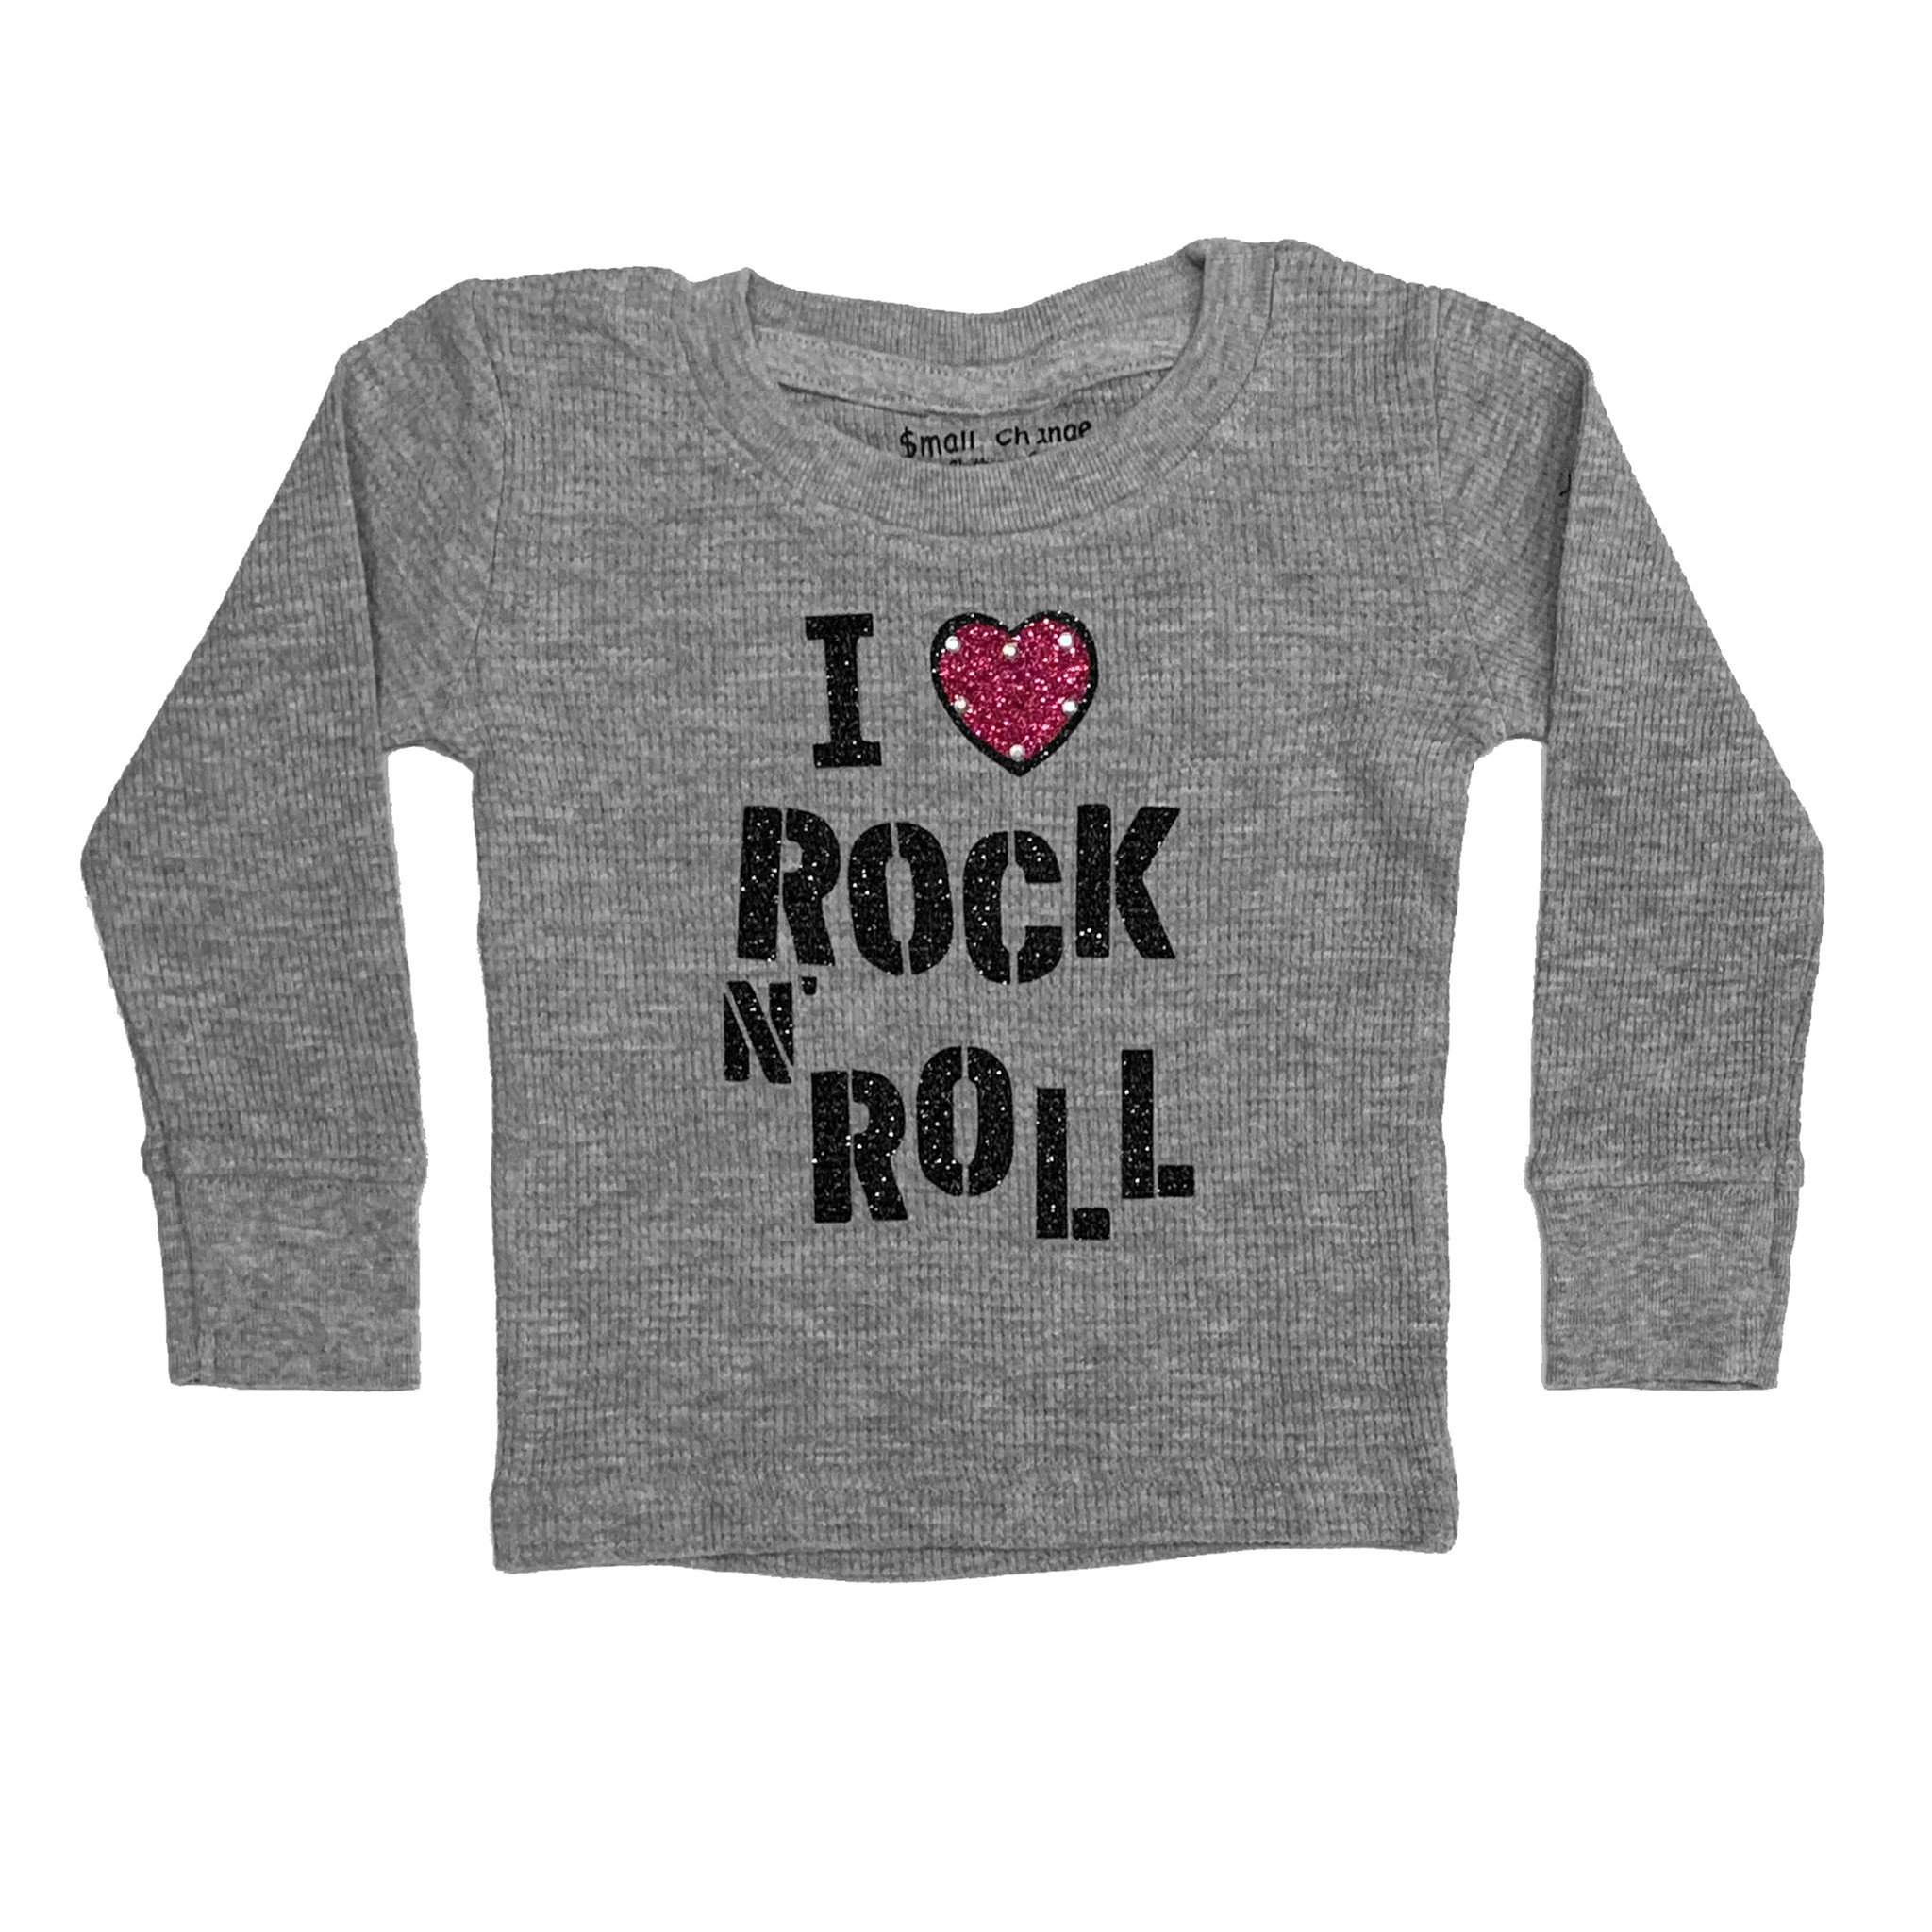 sale retailer 0c4b8 fe0d8 Small Change Grey I Love Rock & Roll Thermal